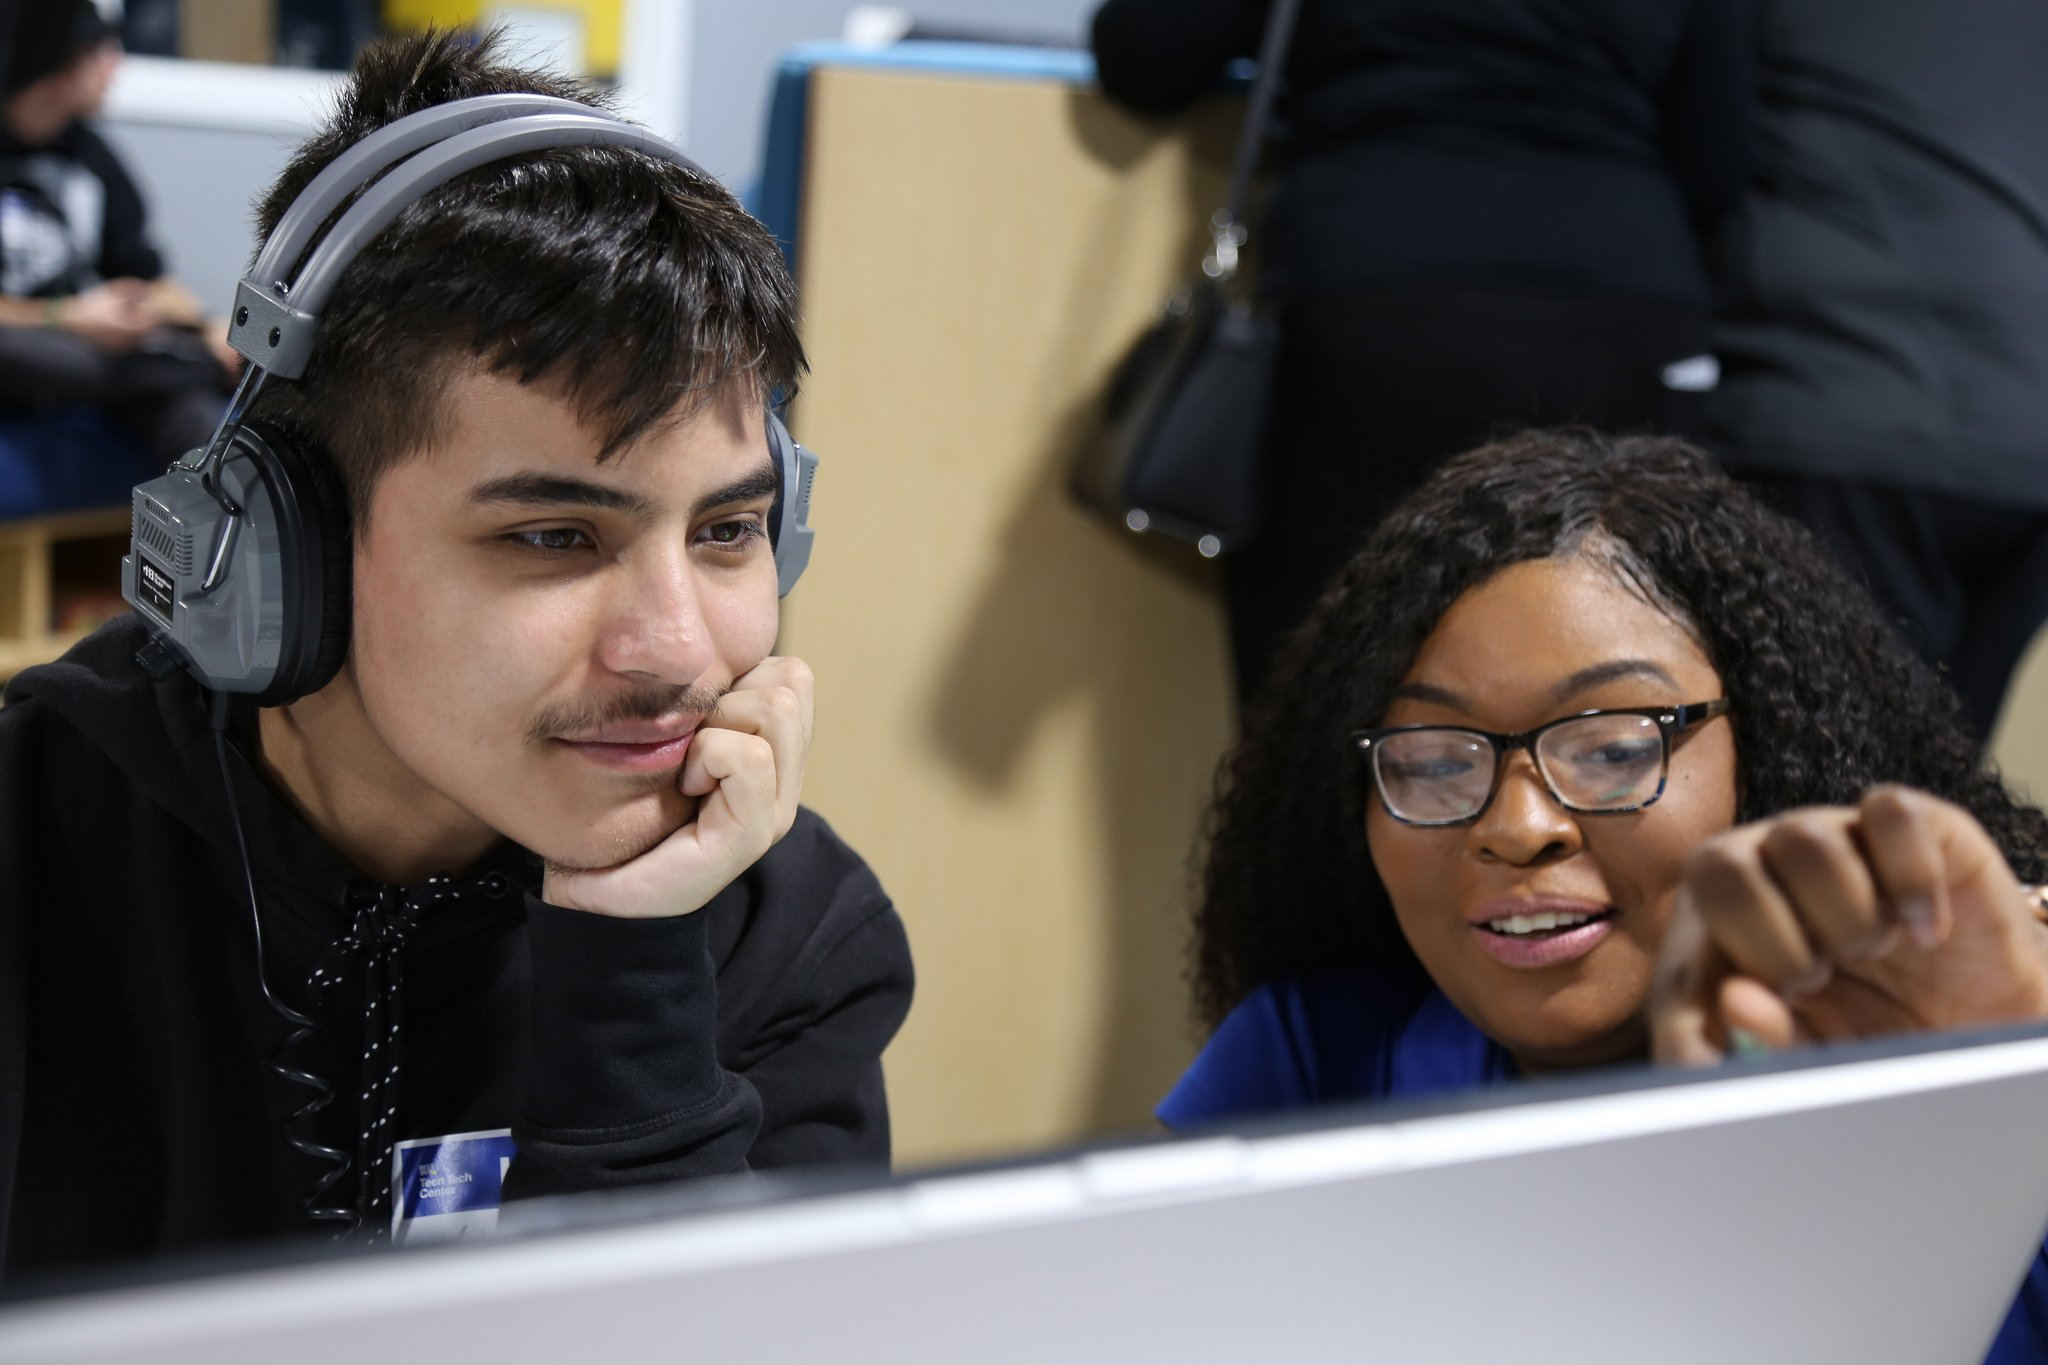 A Best Buy Employee Assists a teen with a project